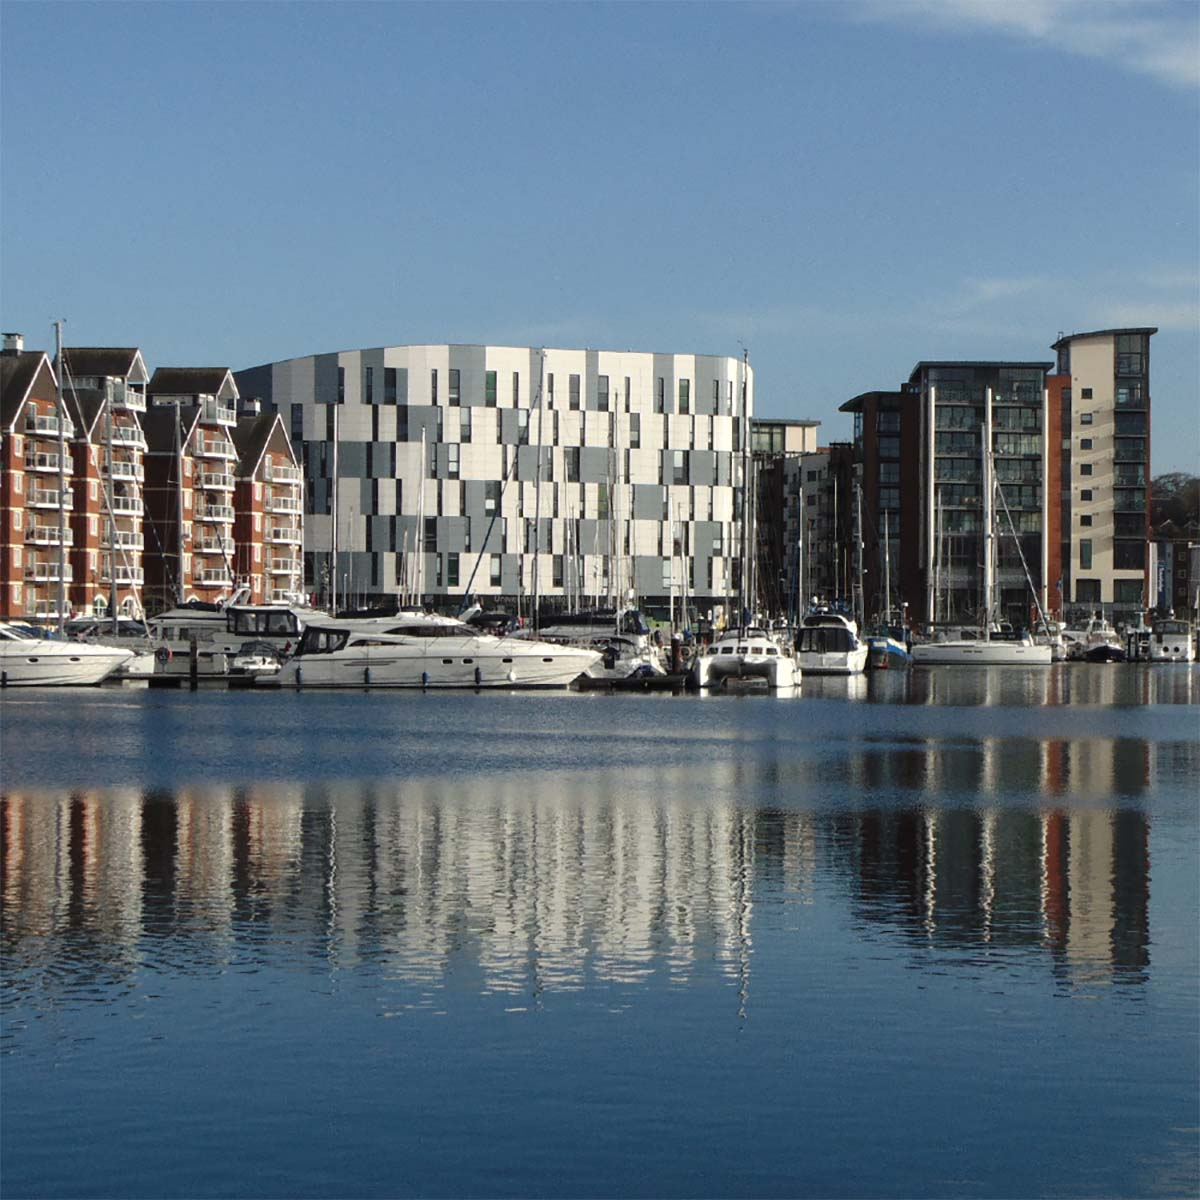 university of suffolk, ipswich waterfront, student life